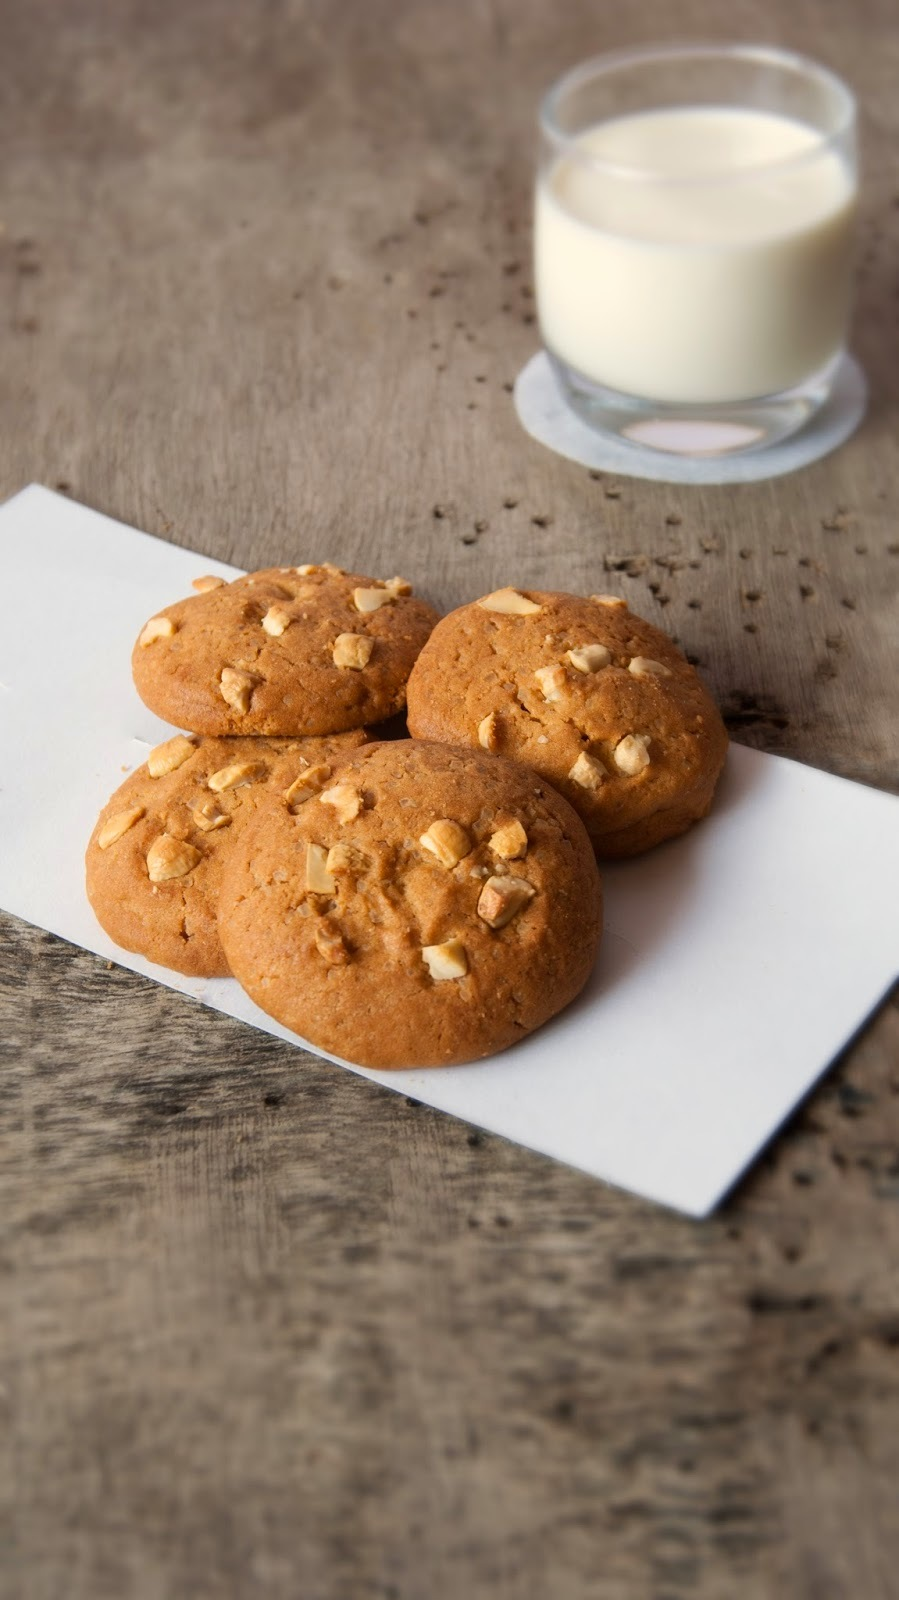 Butterscotch Cookies loaded with Cashew Nuts